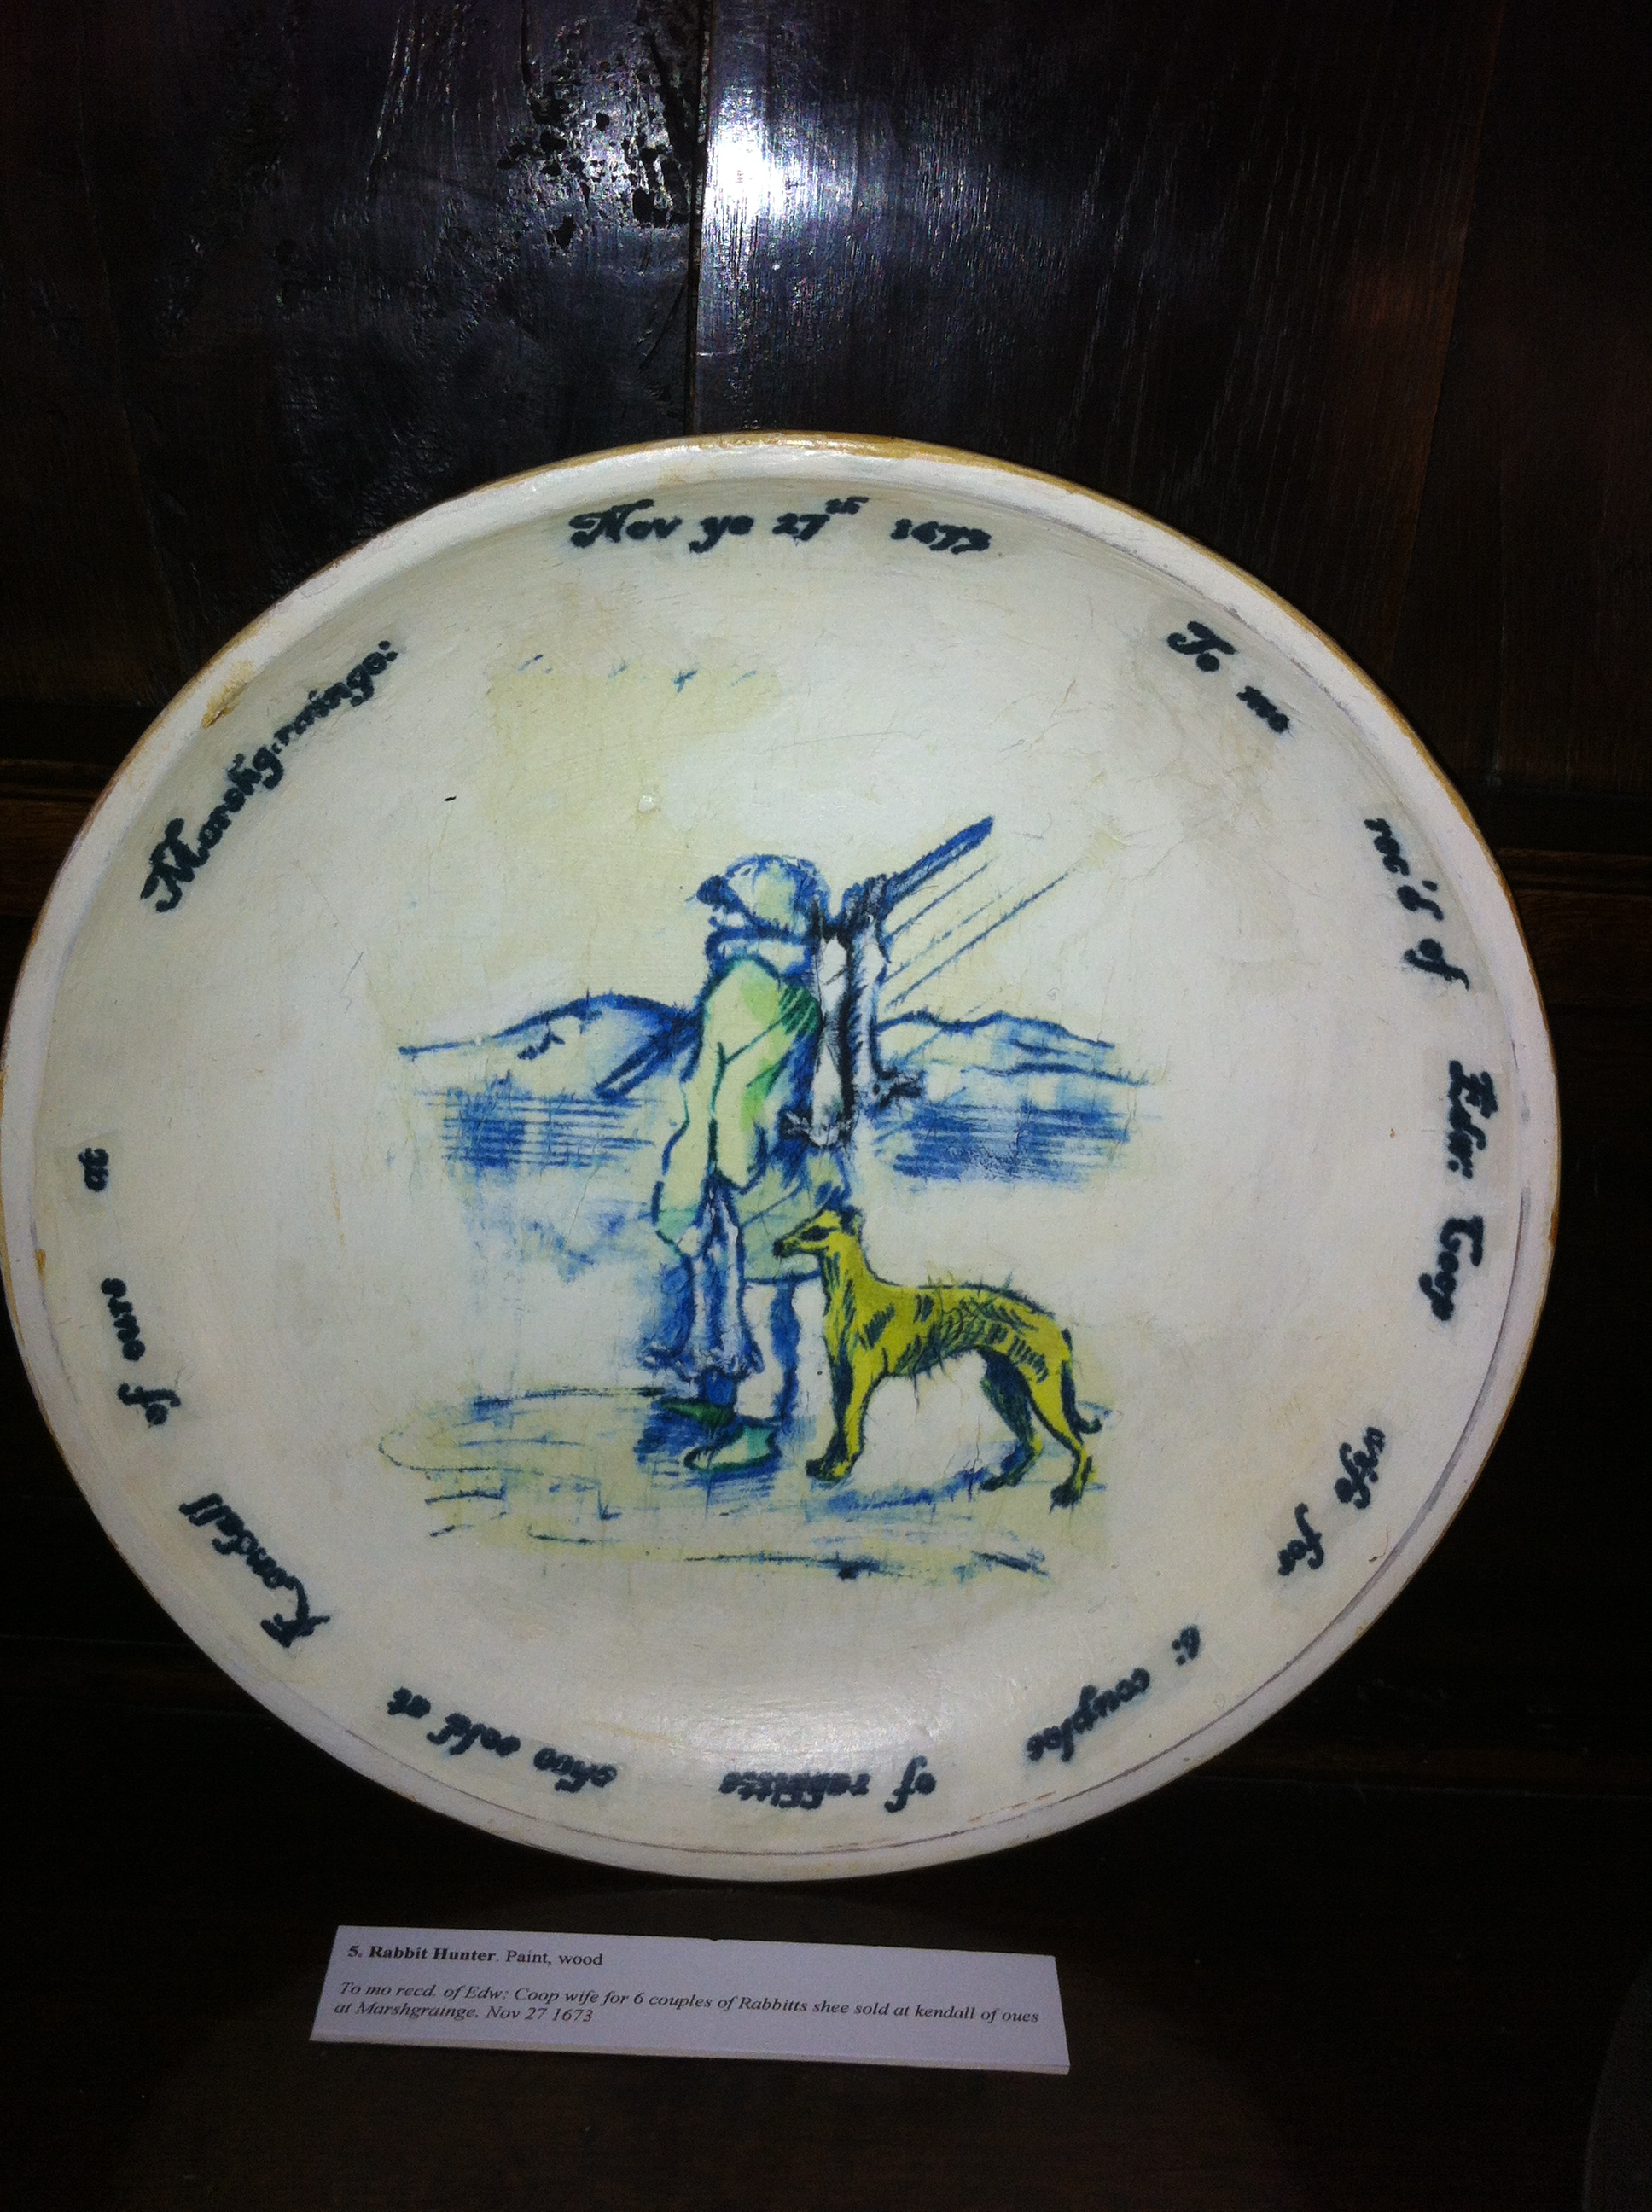 One of Denise's plates sits alongside traditional blue and white pottery on the dresser in the dining room